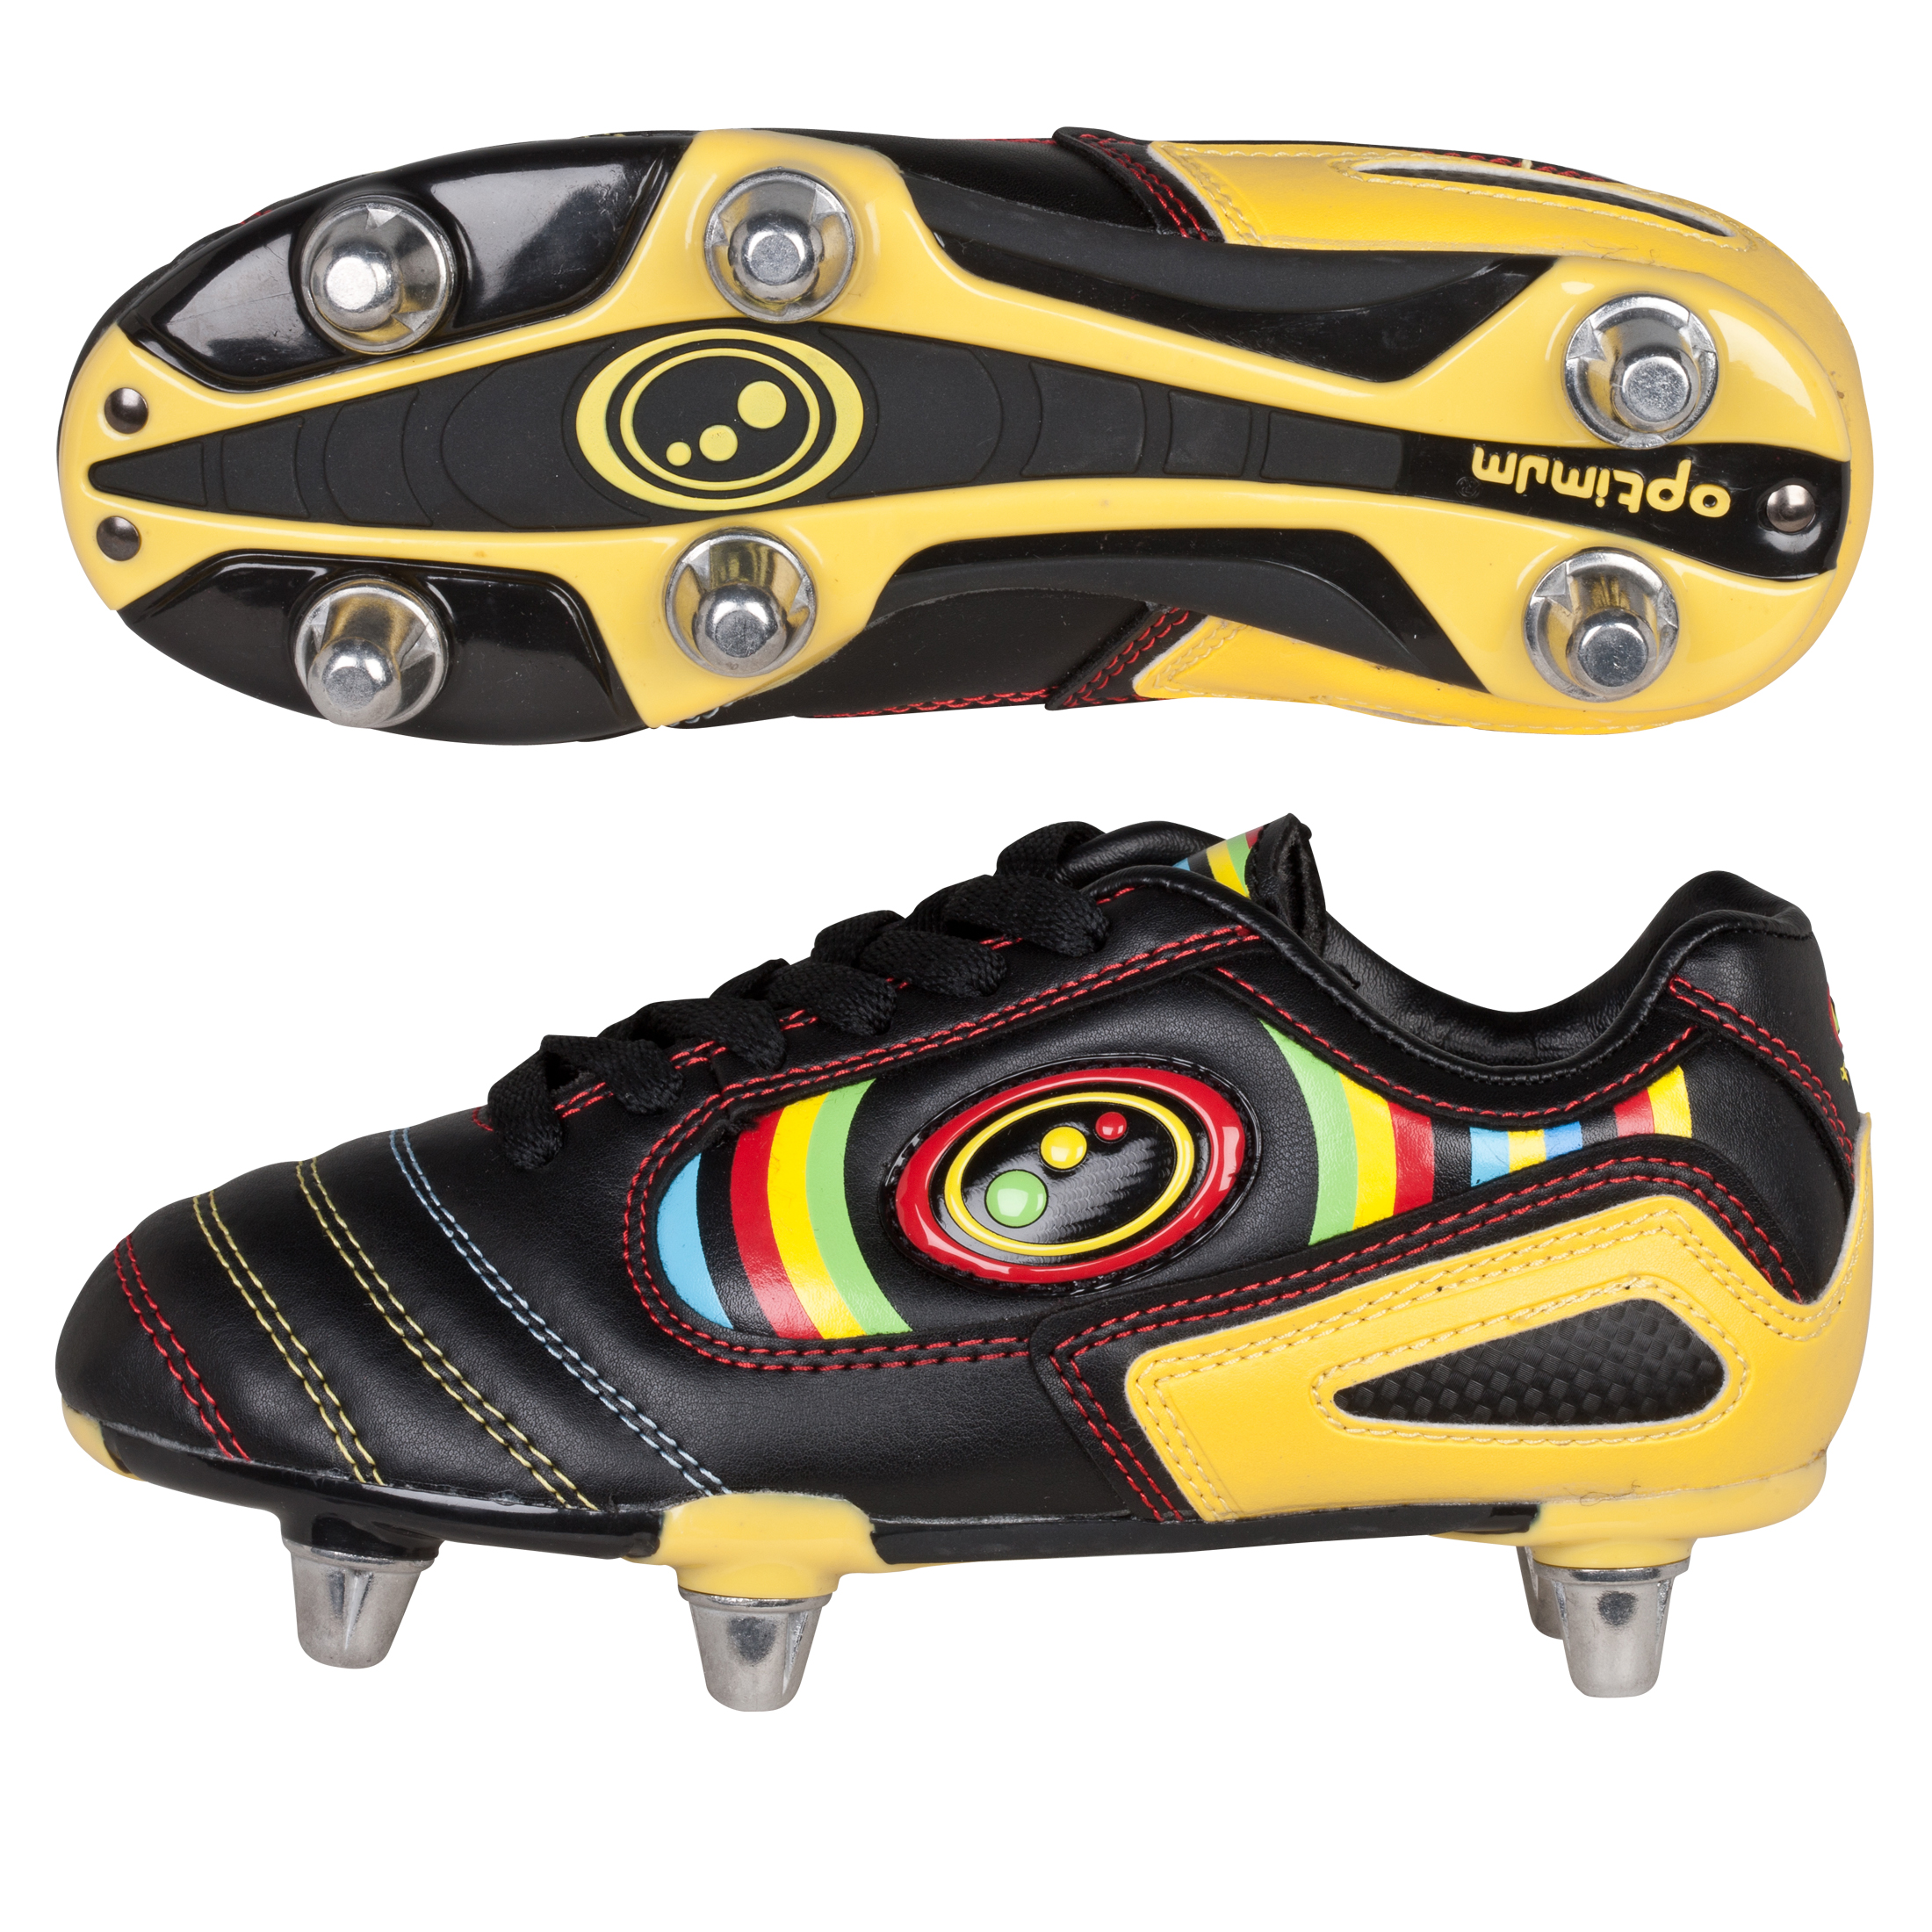 Optimum Shokka Rugby Boots - Shokka/Multicolour - Kids